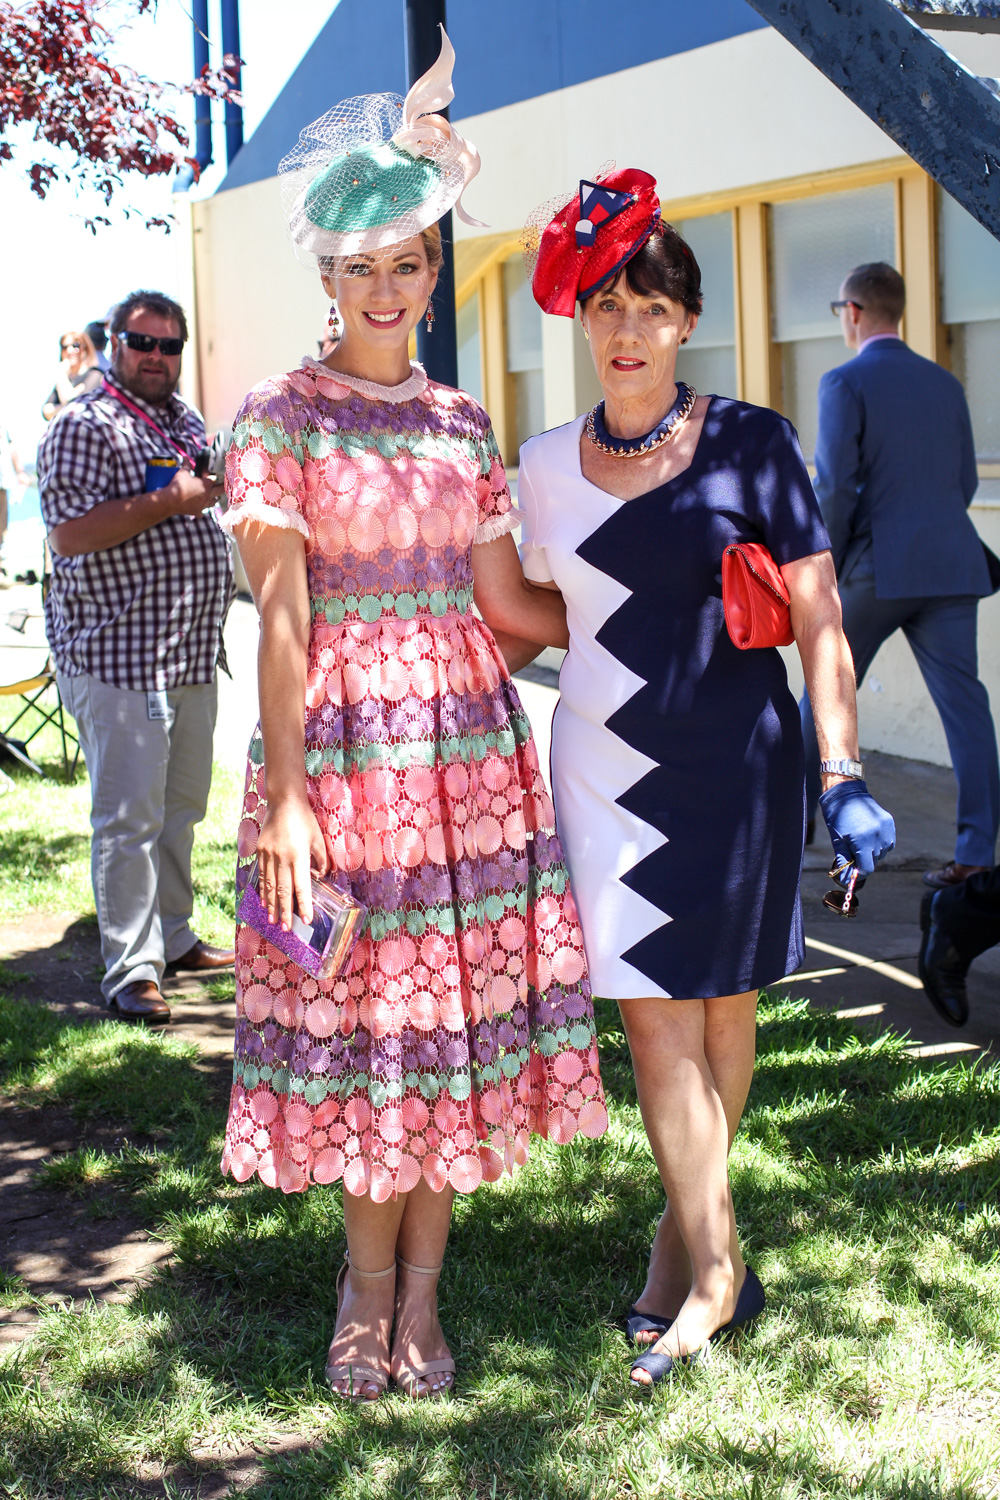 Georgina McKerrow at Ballarat Cup 2016 for the spring racing fashions on the field